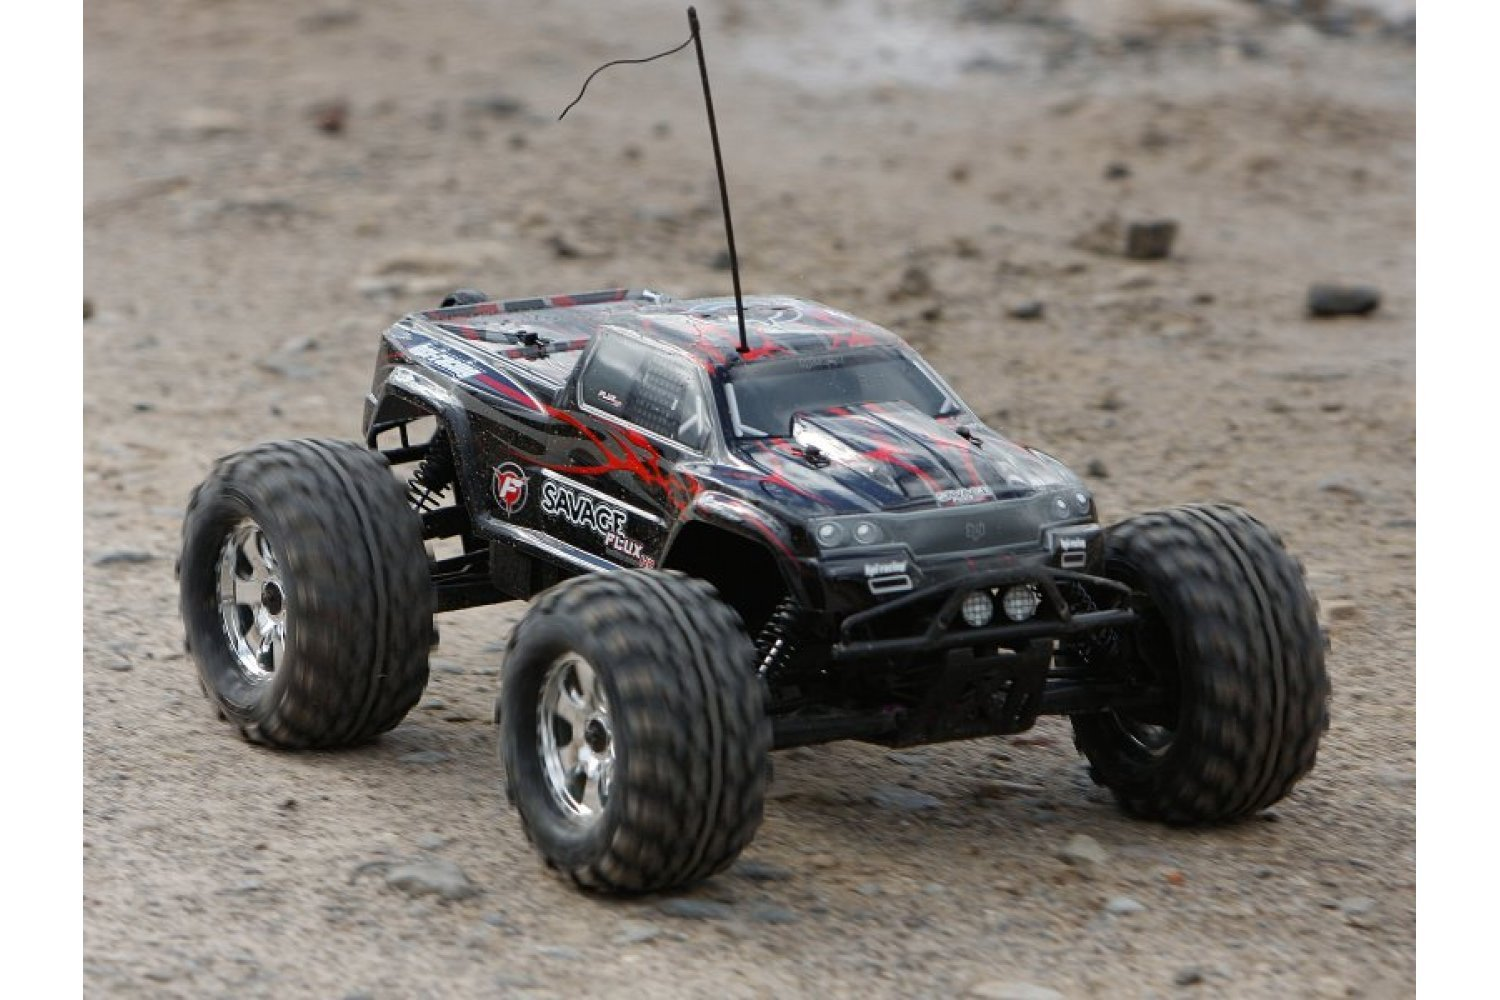 102219   HPI 1/8 Savage Flux HP Black Painted Body Shell